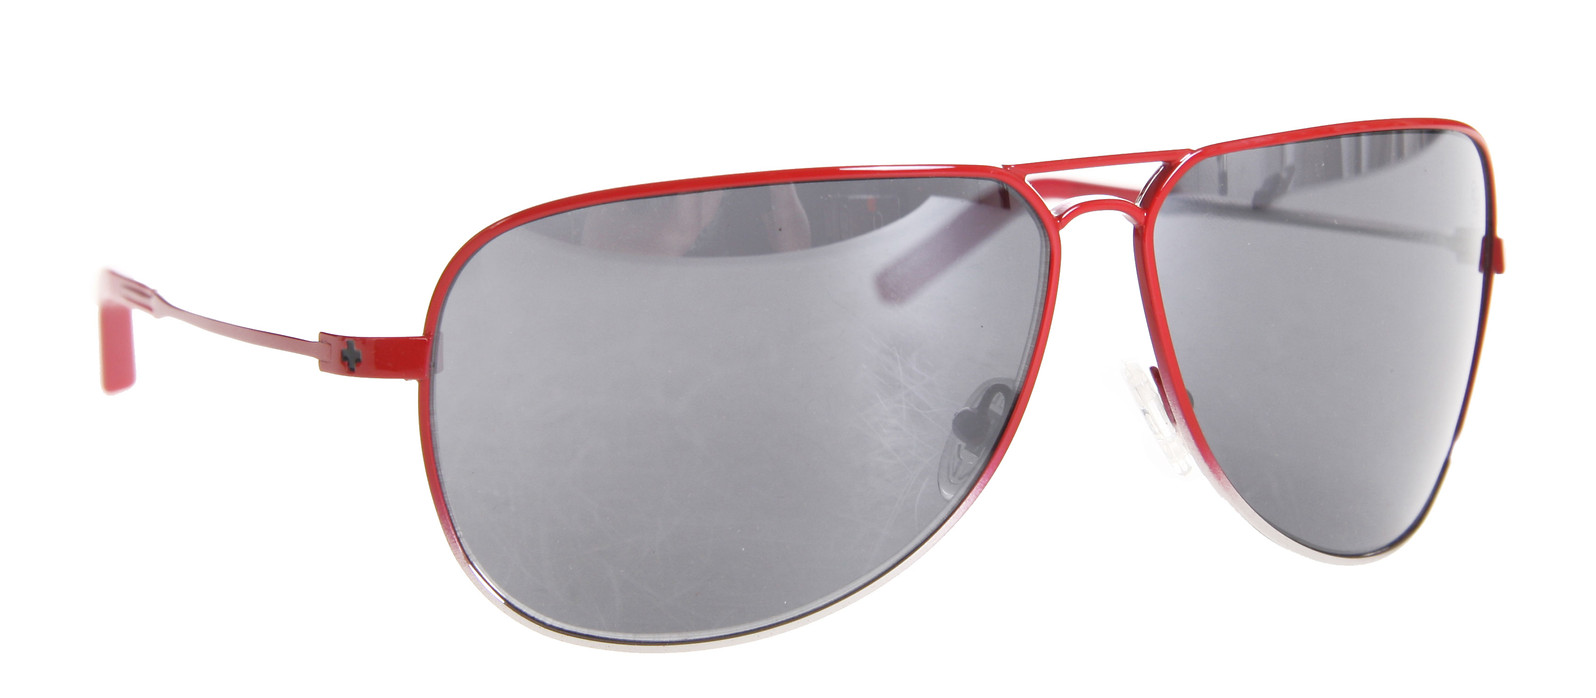 Spy Optic Spy Wilshire Sunglasses Red Chrome Fade Grey/Silver Mirror Lens  spy-willshire-sngls-redchrmgry-09.jpg